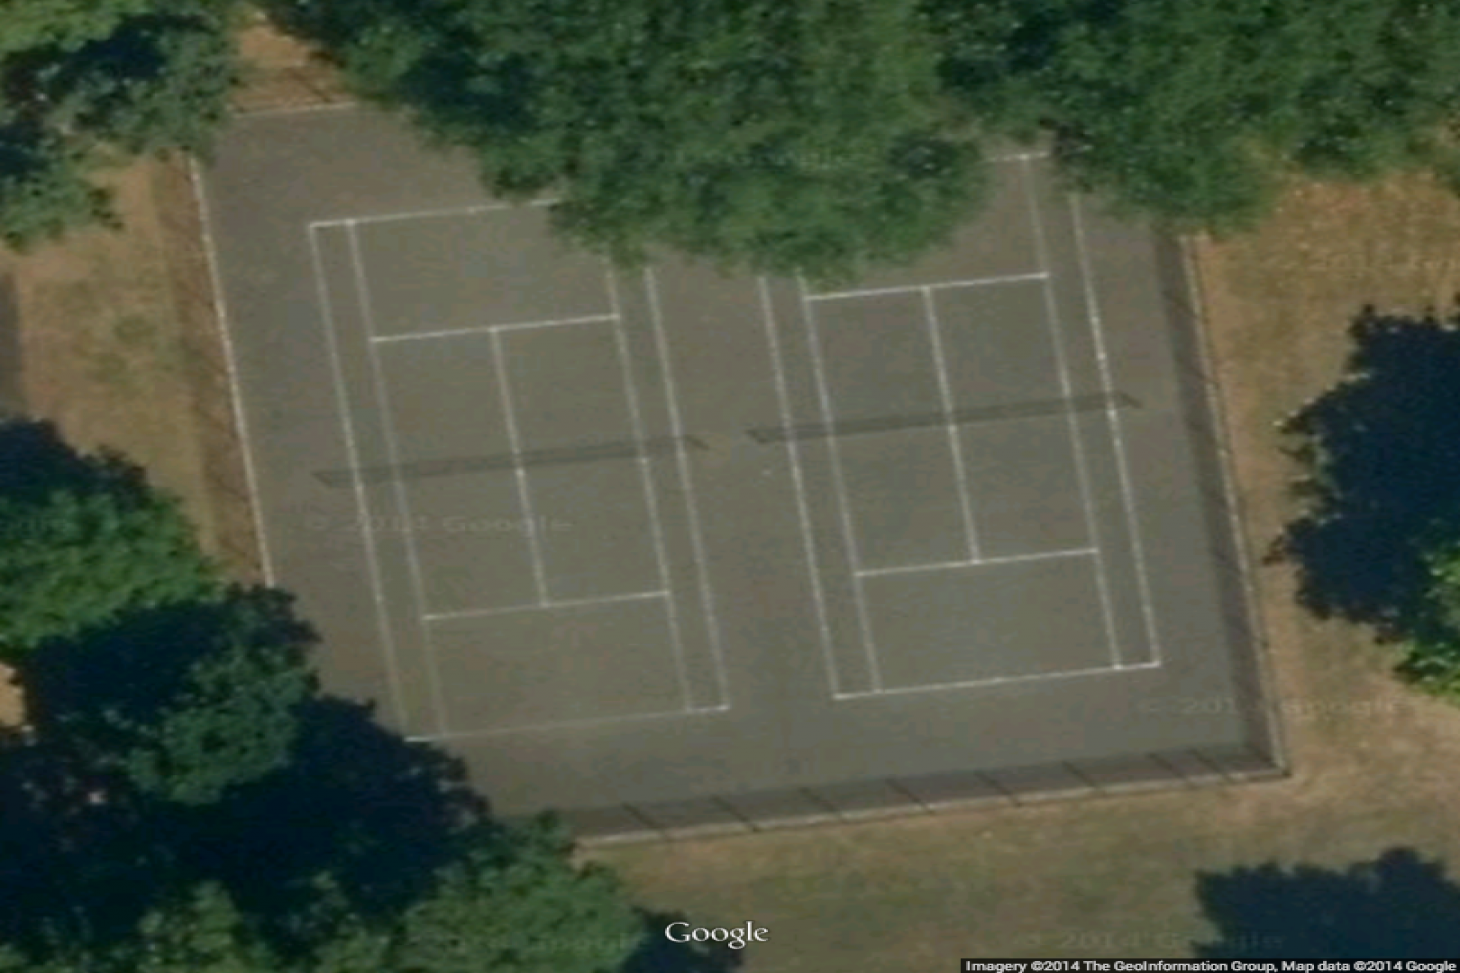 Royal Victoria Gardens Outdoor | Concrete tennis court